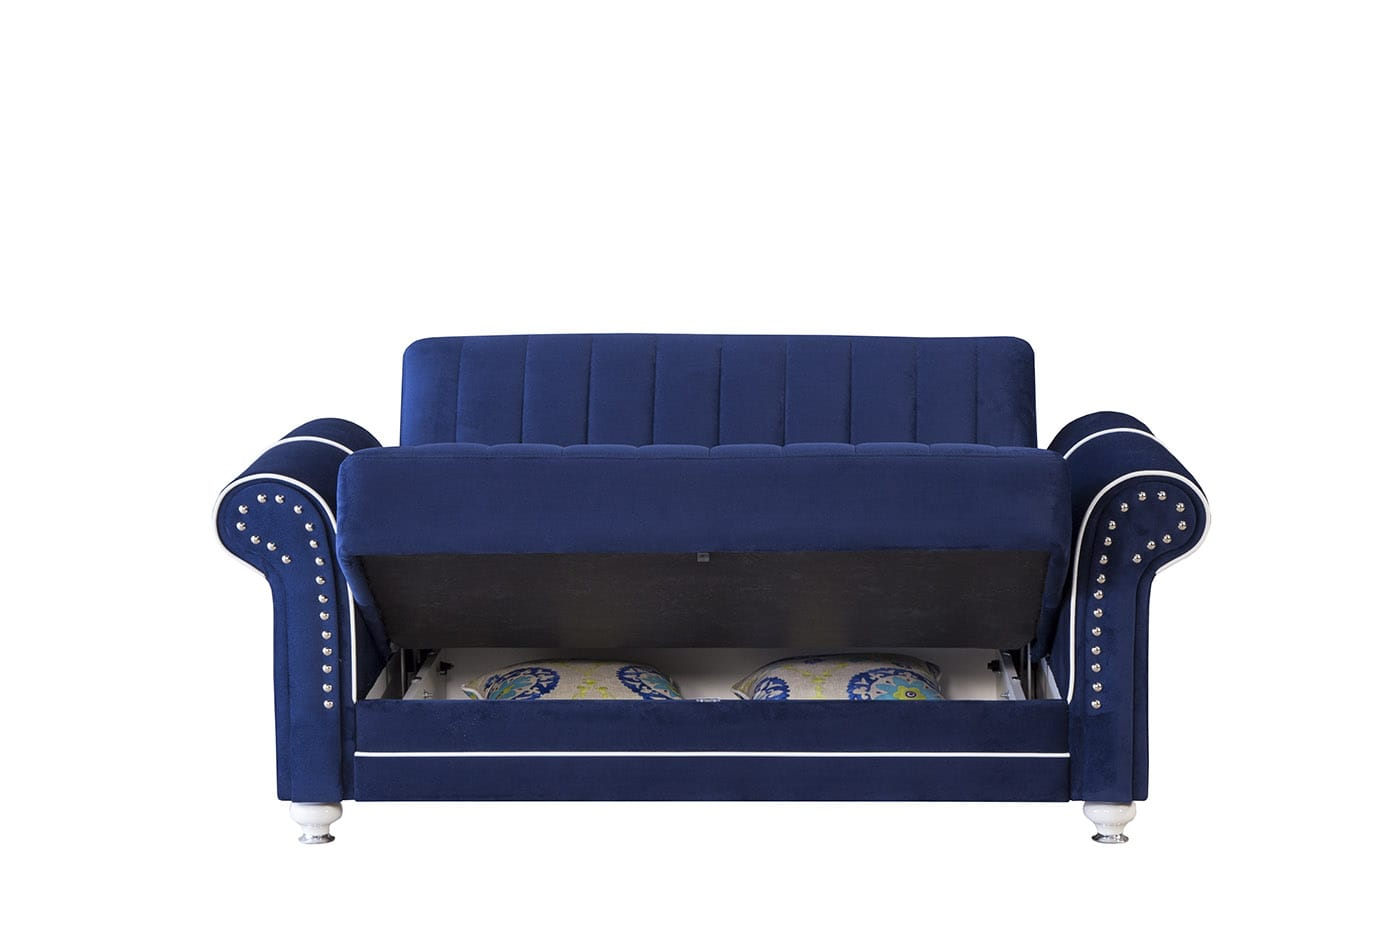 Royal Home Riva Dark Blue Convertible Loveseat By Casamode